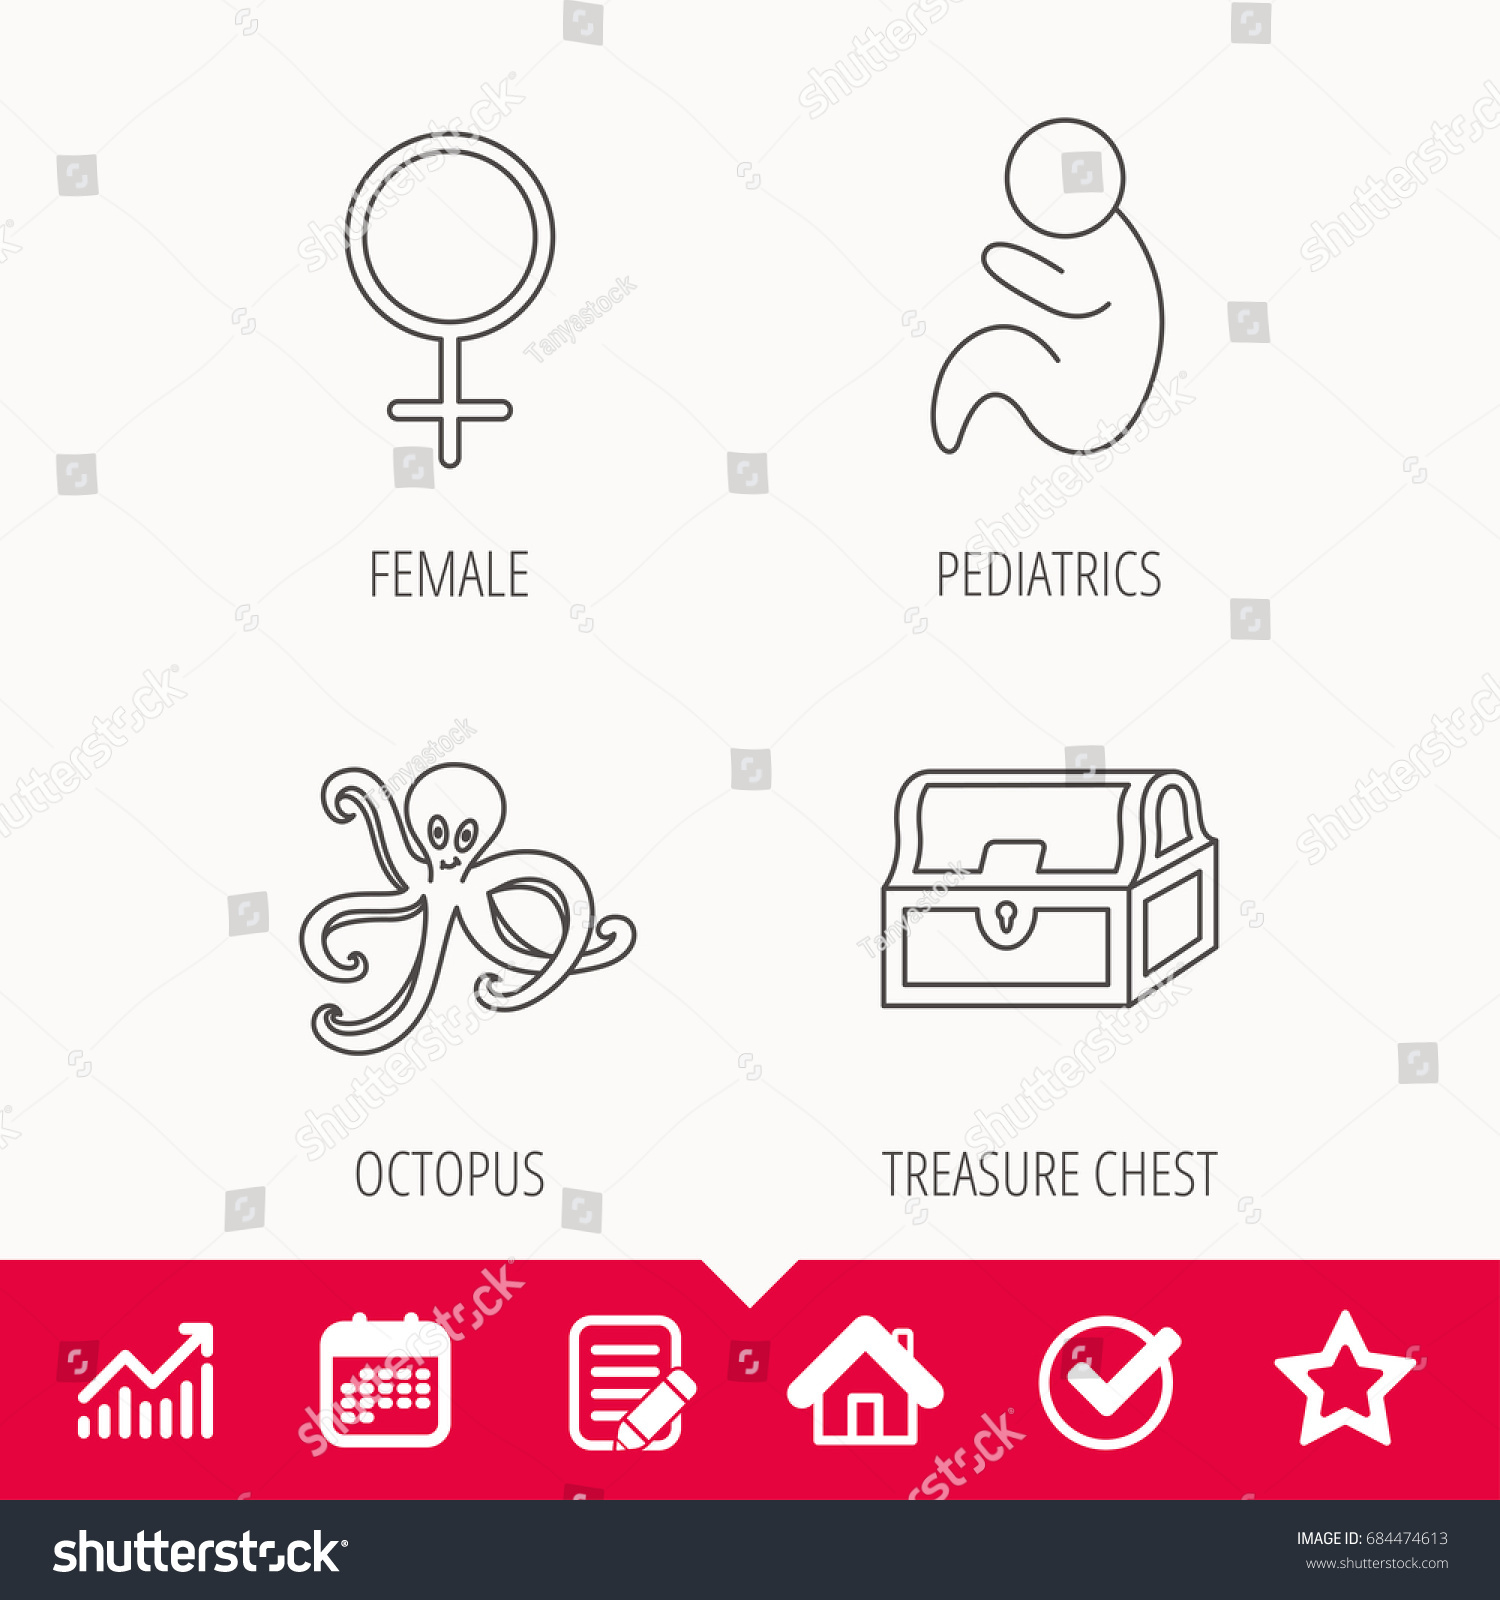 Female treasure chest pediatrics icons octopus stock vector female treasure chest and pediatrics icons octopus linear sign edit document calendar nvjuhfo Gallery